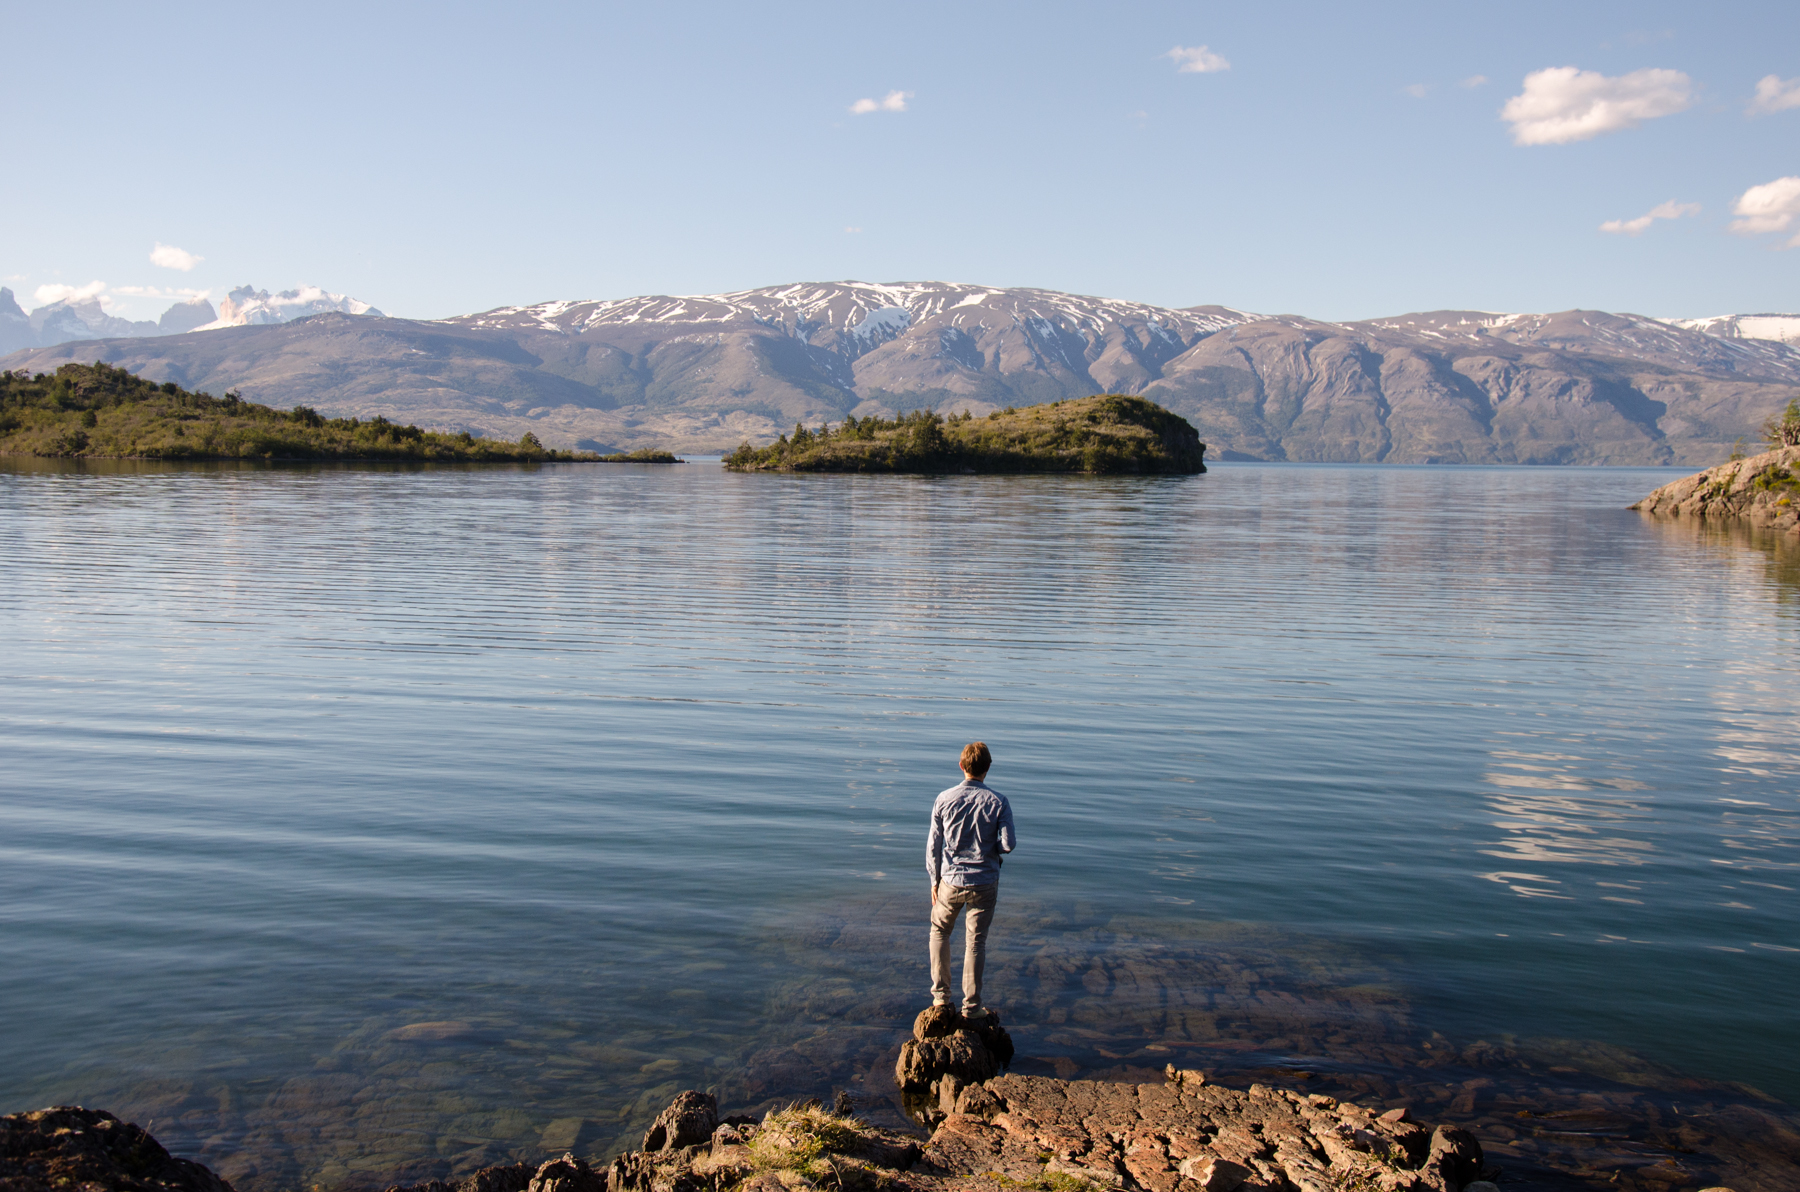 Patagonia Camp, on the shores of Lago Toro